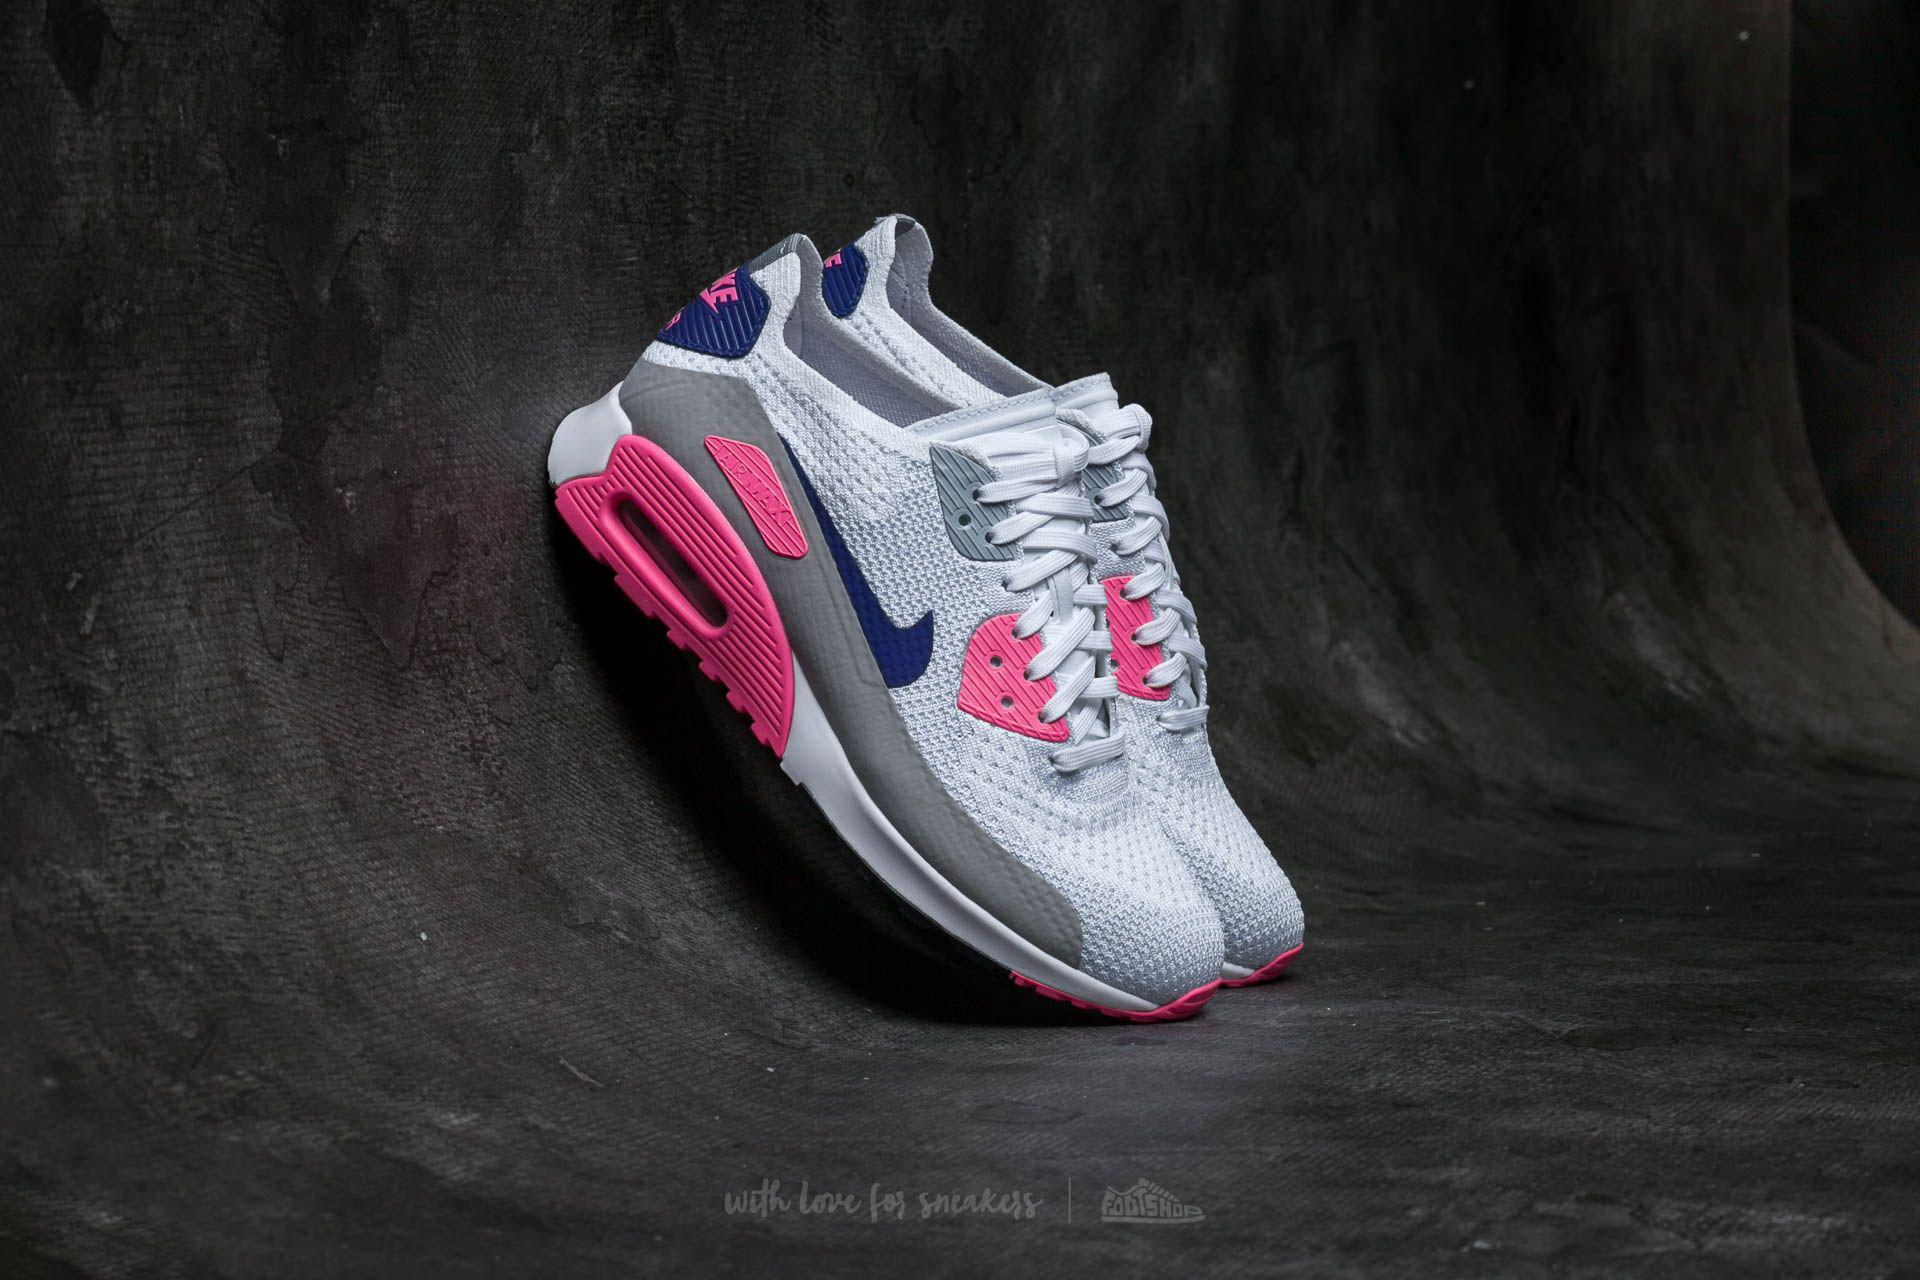 timeless design f5943 28fb2 Nike W Air Max 90 Ultra 2.0 Flyknit White/ Concord-laser Pink-black ...